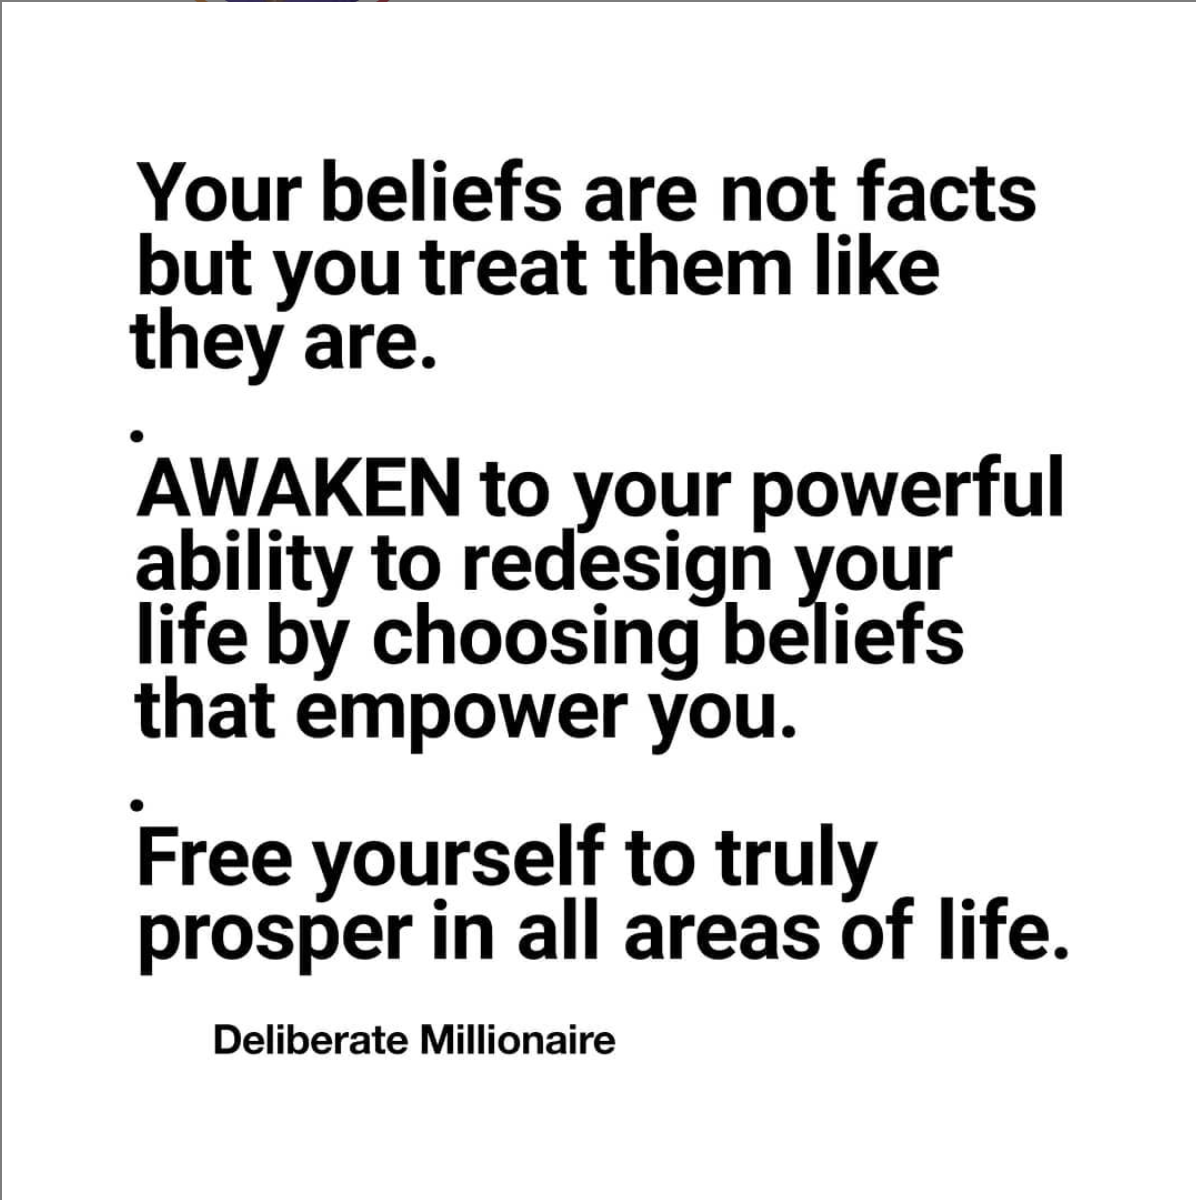 Your Beliefs Are Not Facts But You Treat Them As Though They Are